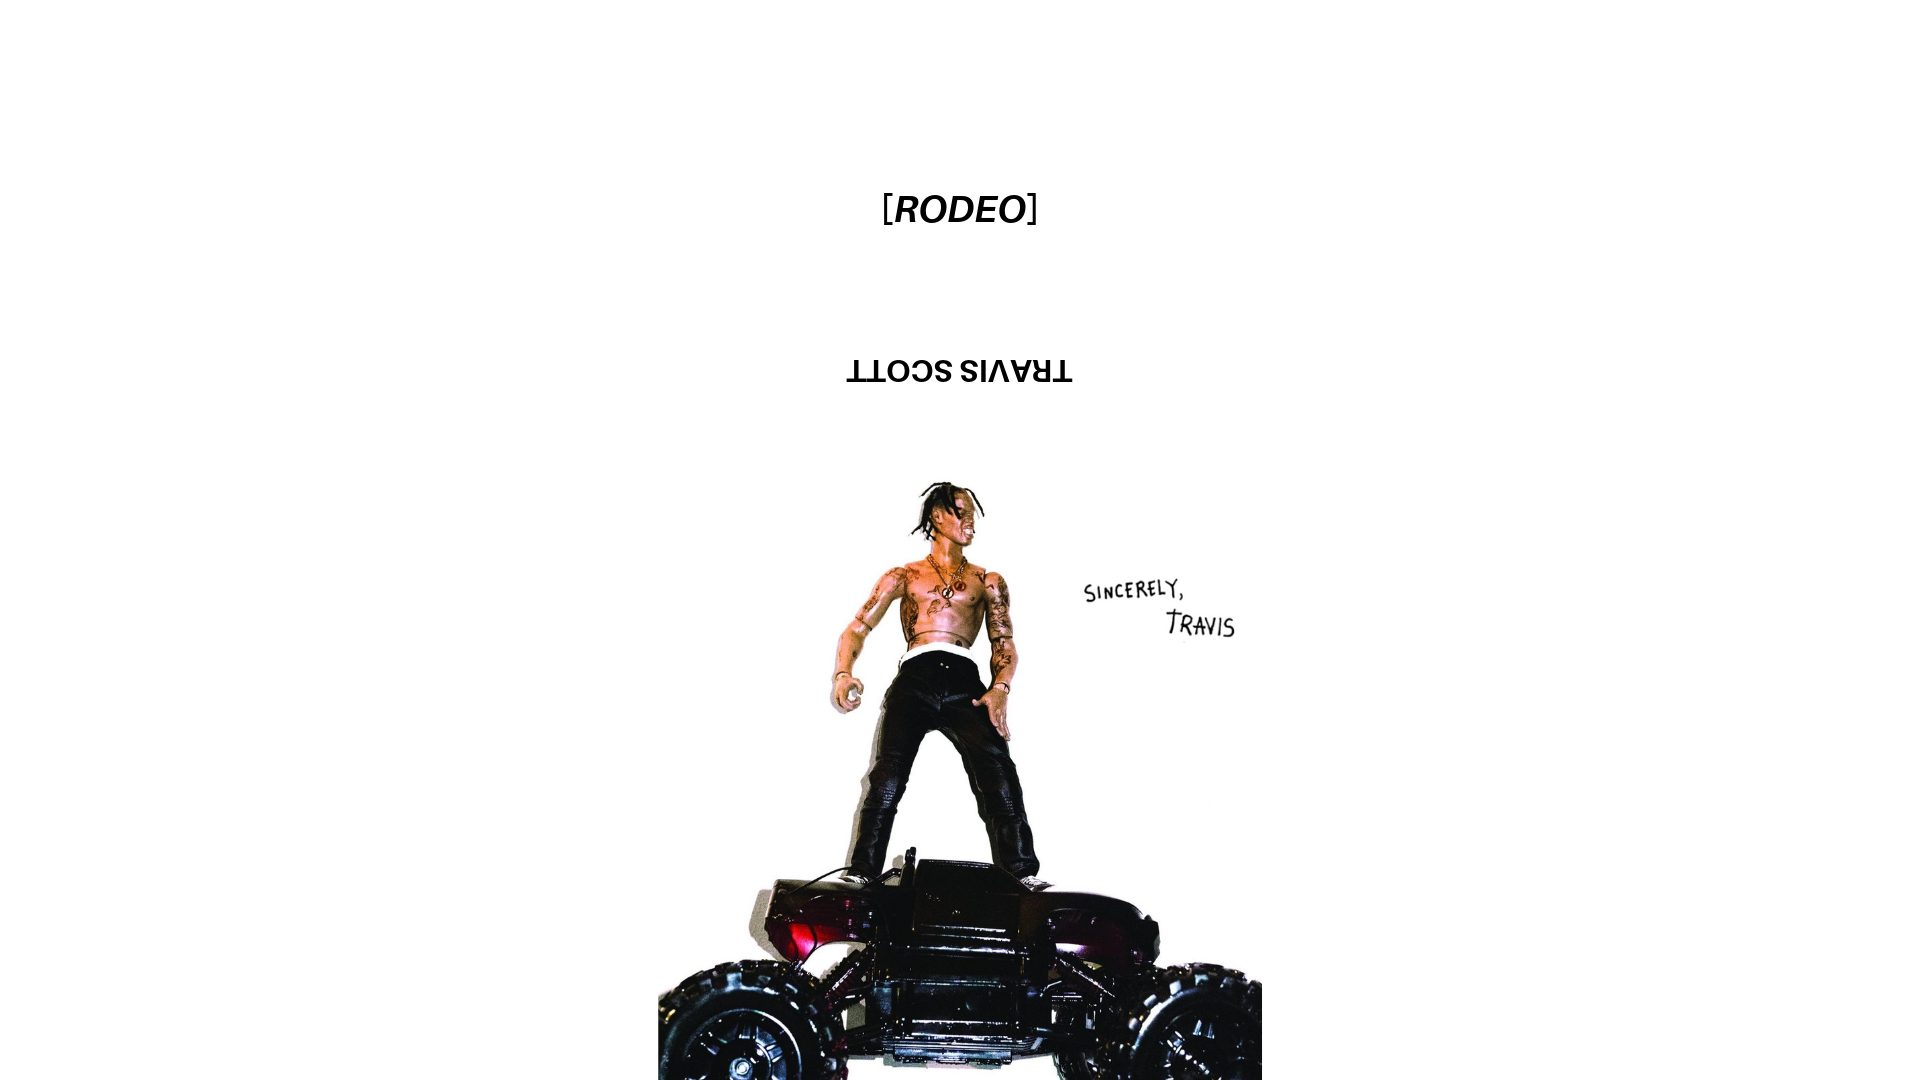 rodeo desktop wallpaper i made for my macbook hope you guys like 1920x1080